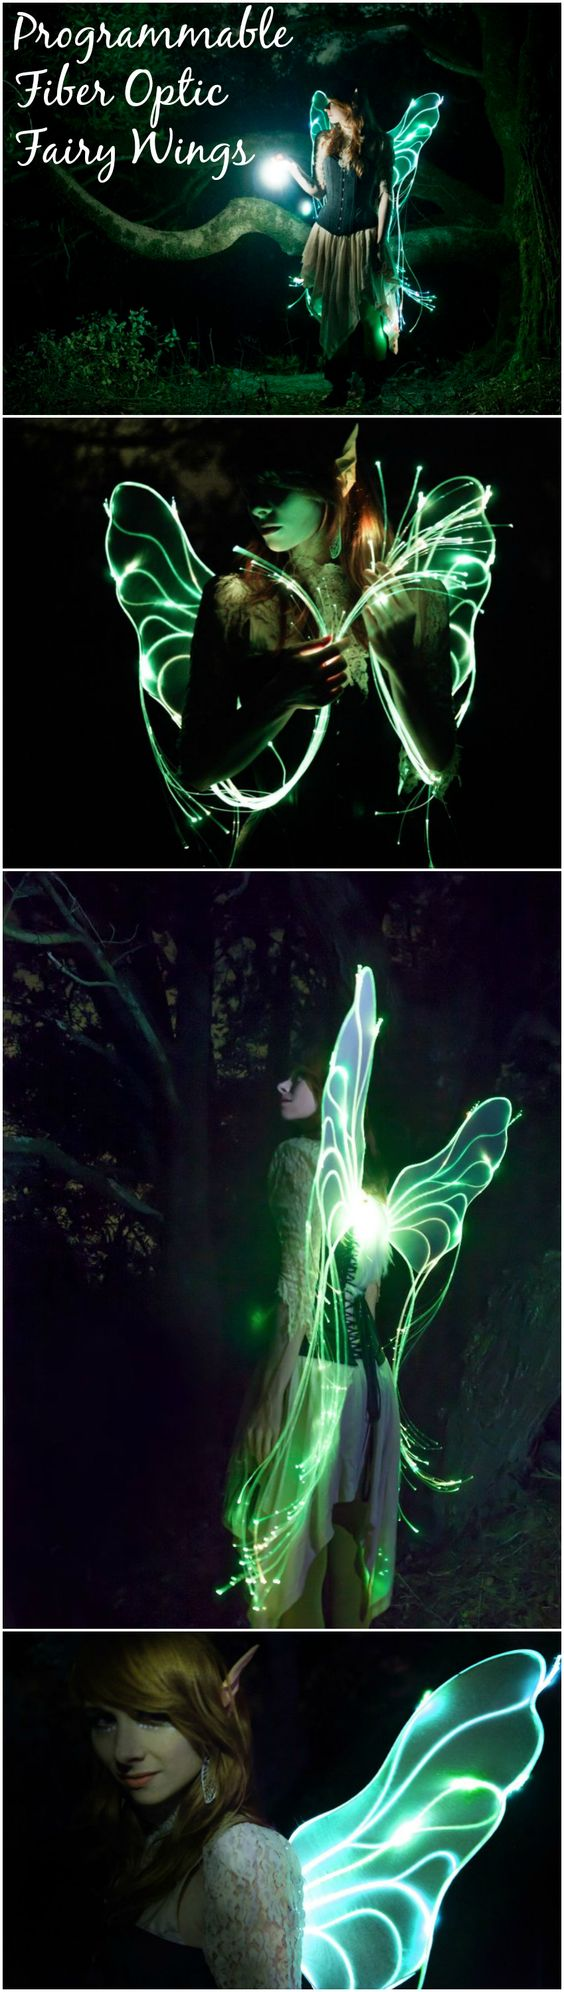 Fiber Optic Fairy Wings.